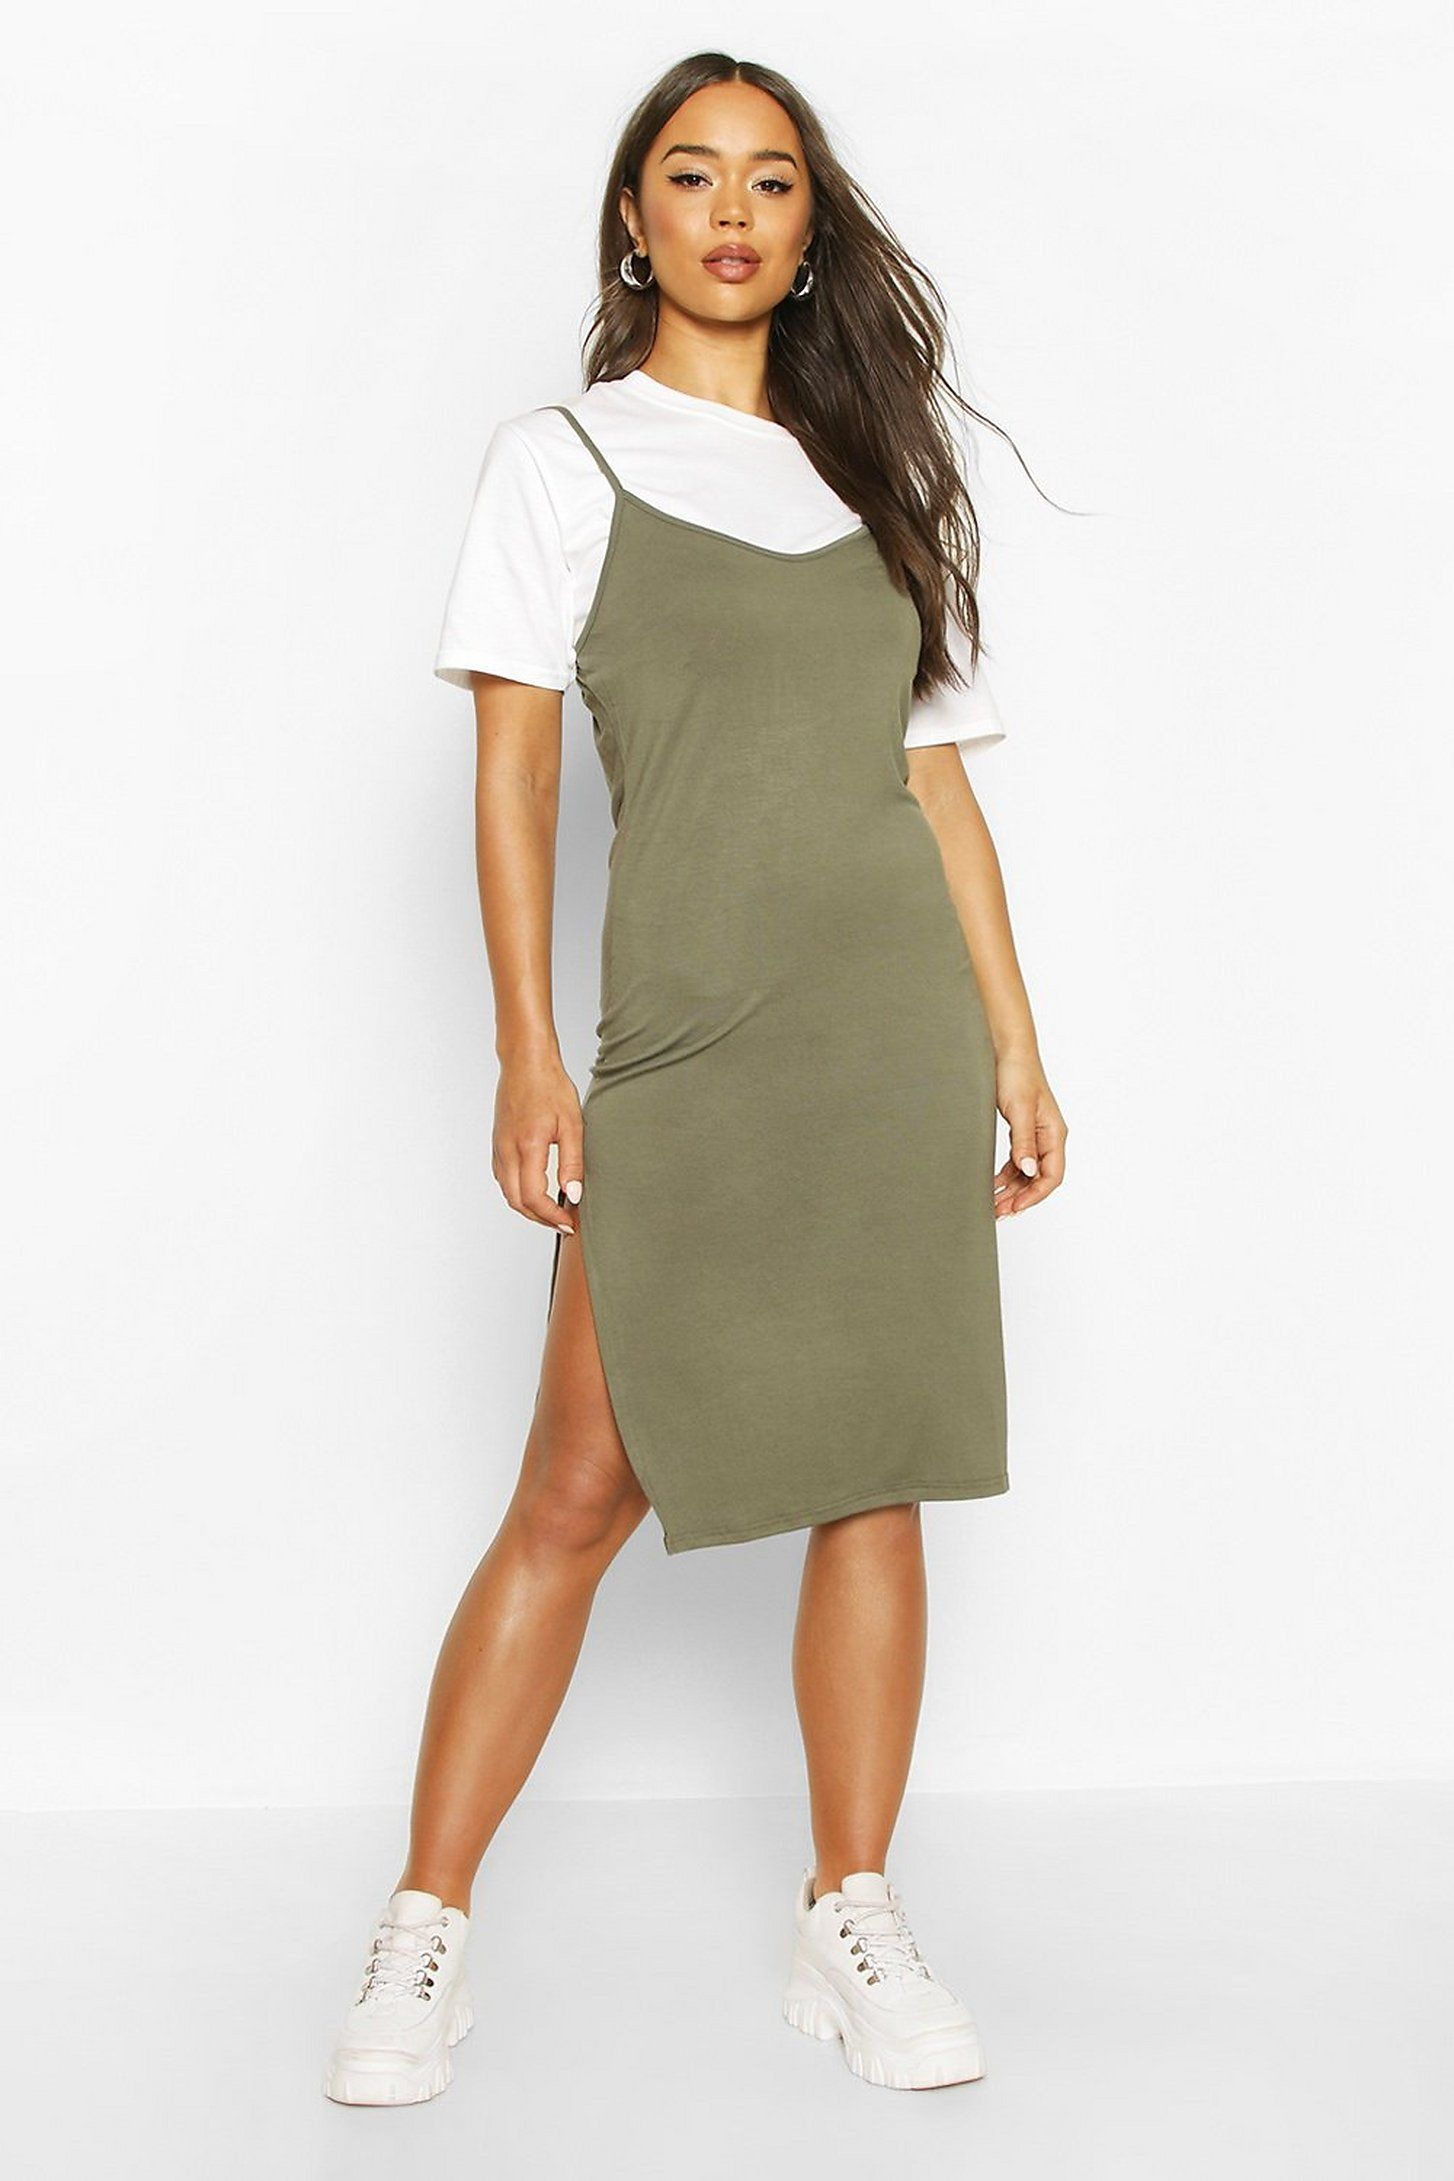 Jersey Slip Midi Dress Boohoo Slip Dress Outfit Trendy Dress Outfits Tomboy Style Outfits [ 2181 x 1454 Pixel ]